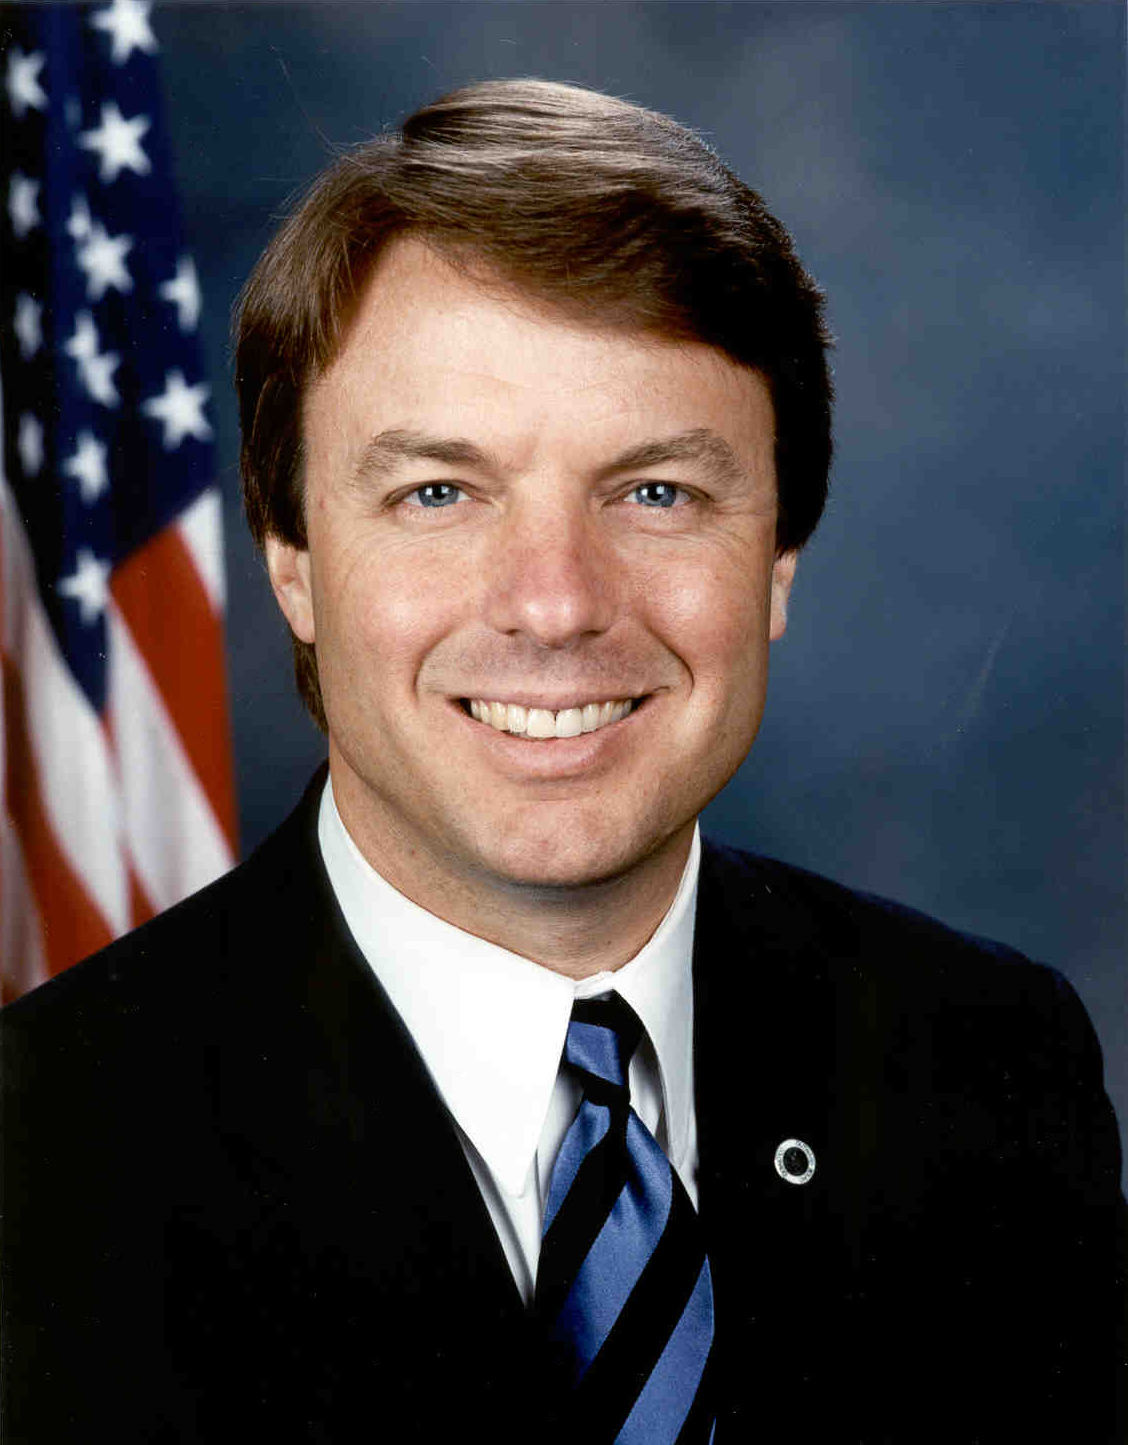 John_Edwards,_official_Senate_photo_portrait.jpg